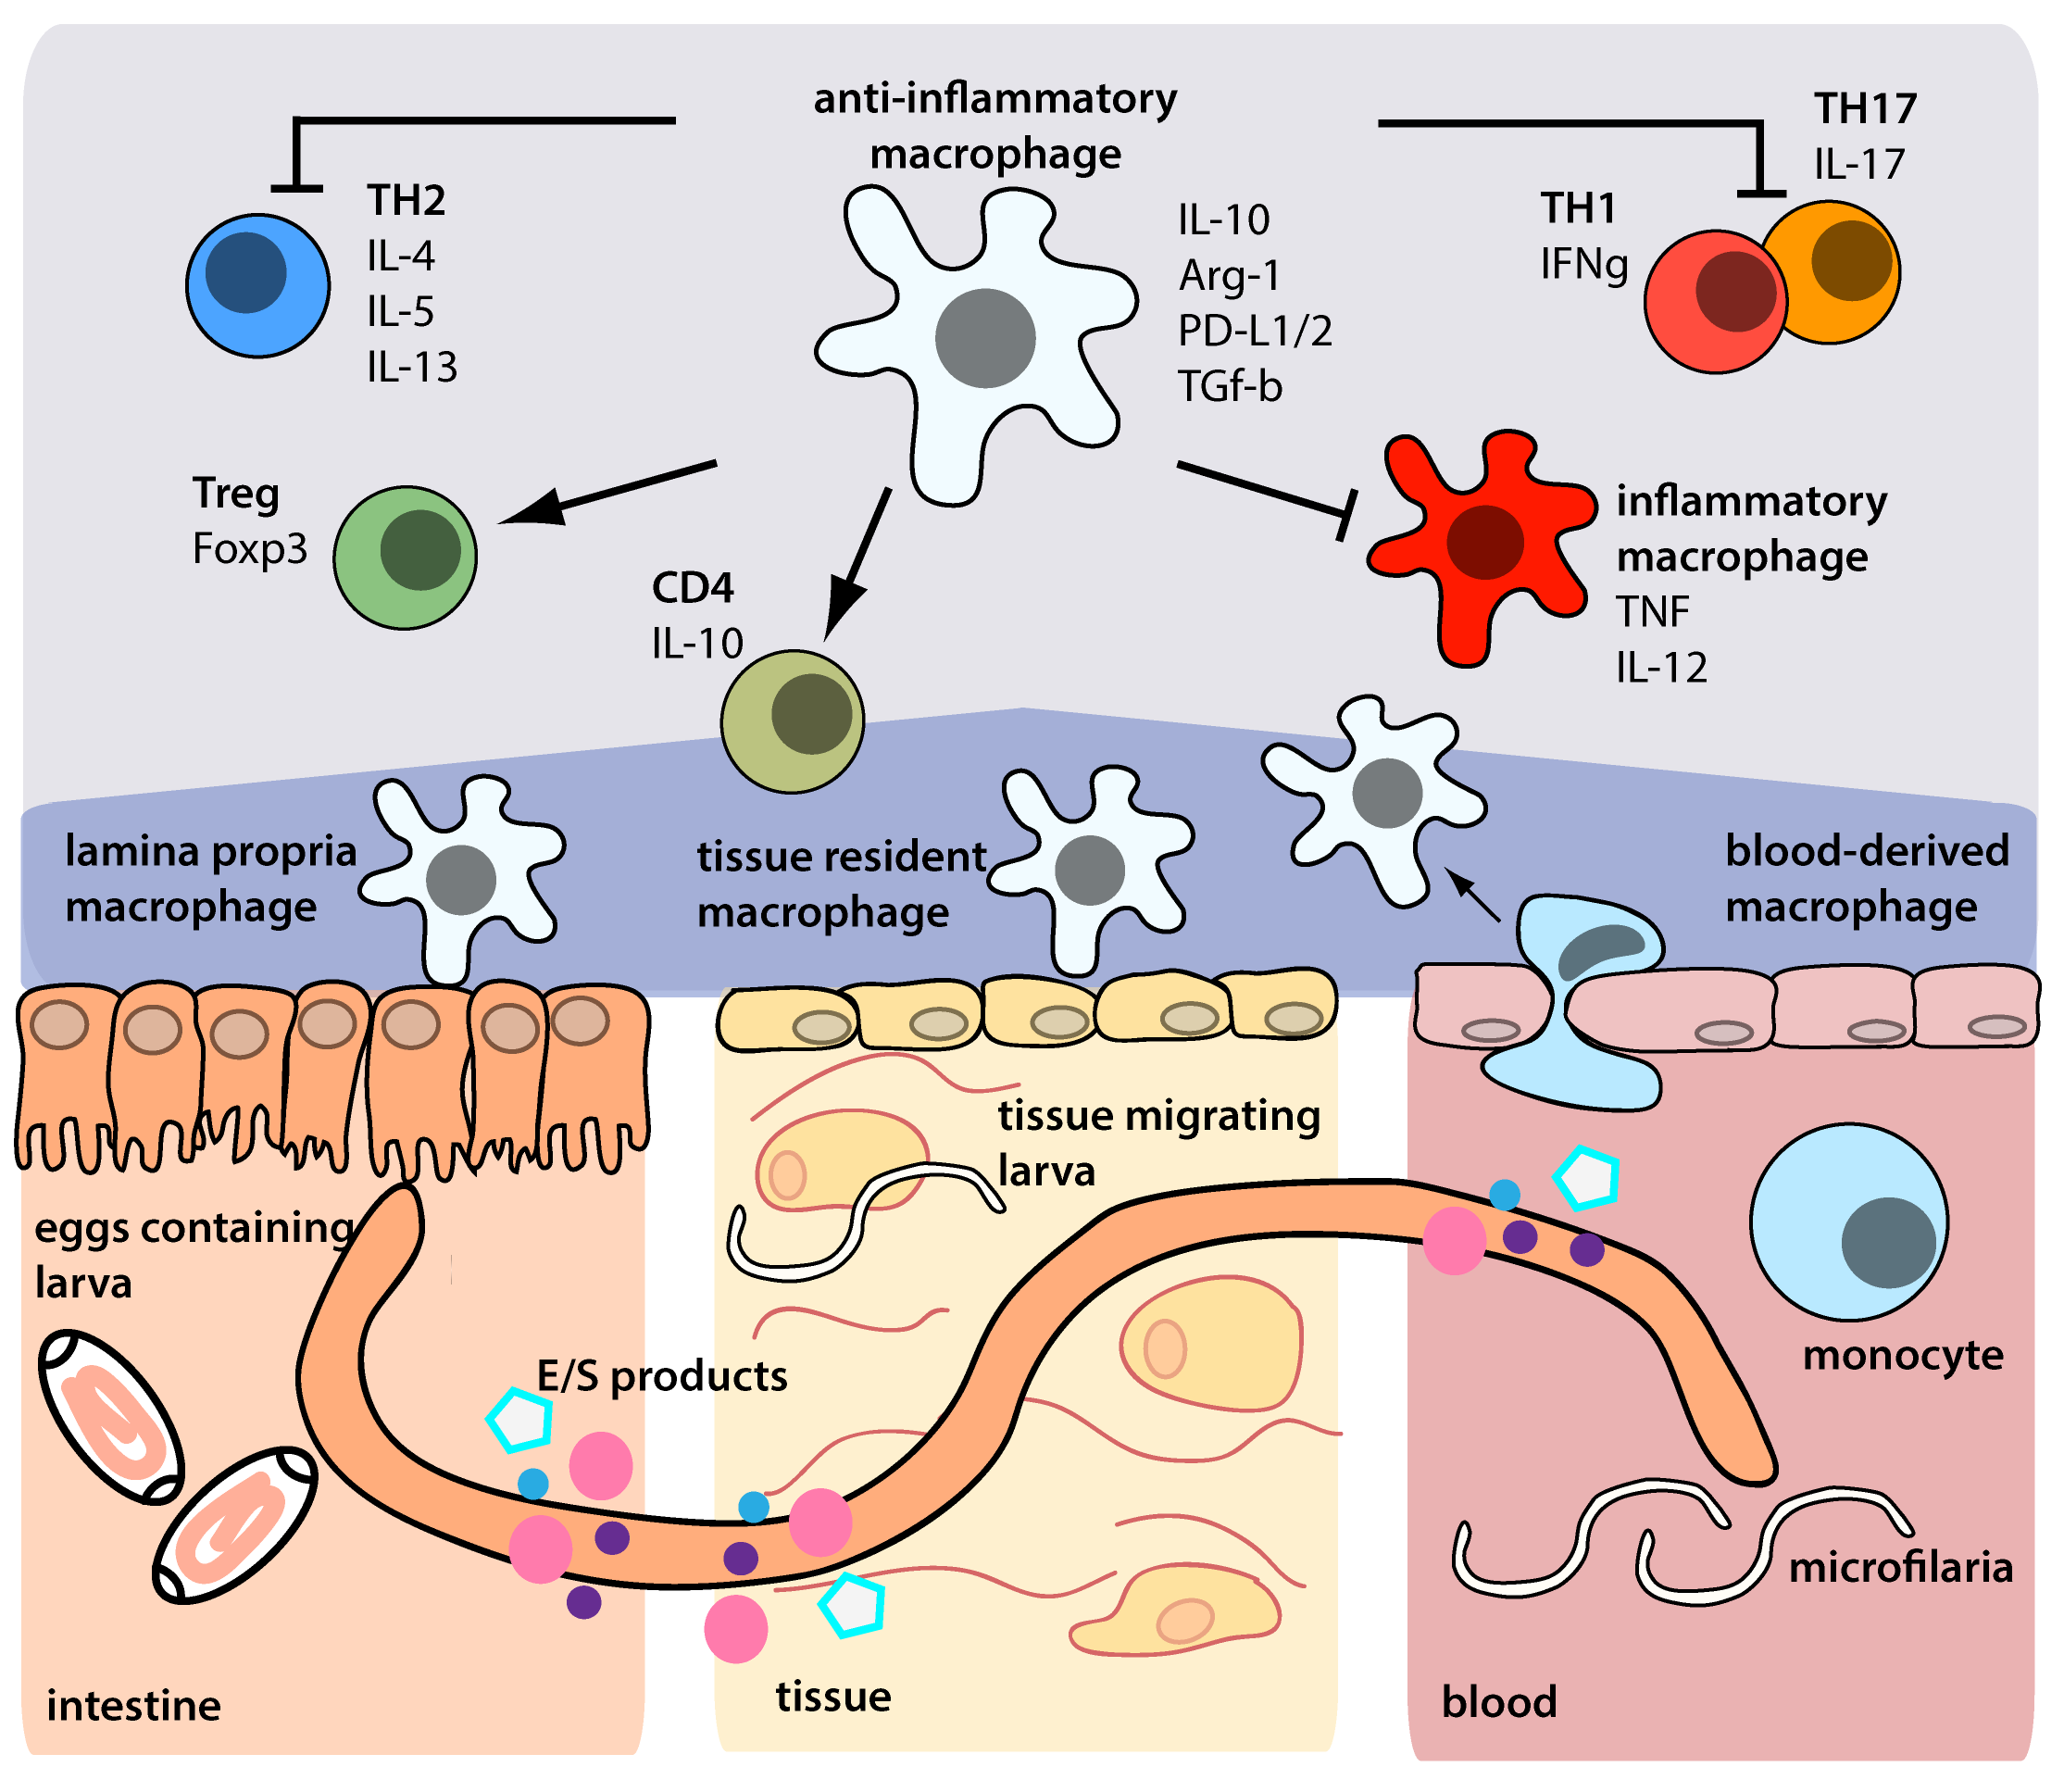 helminth therapy in inflammatory bowel diseases)